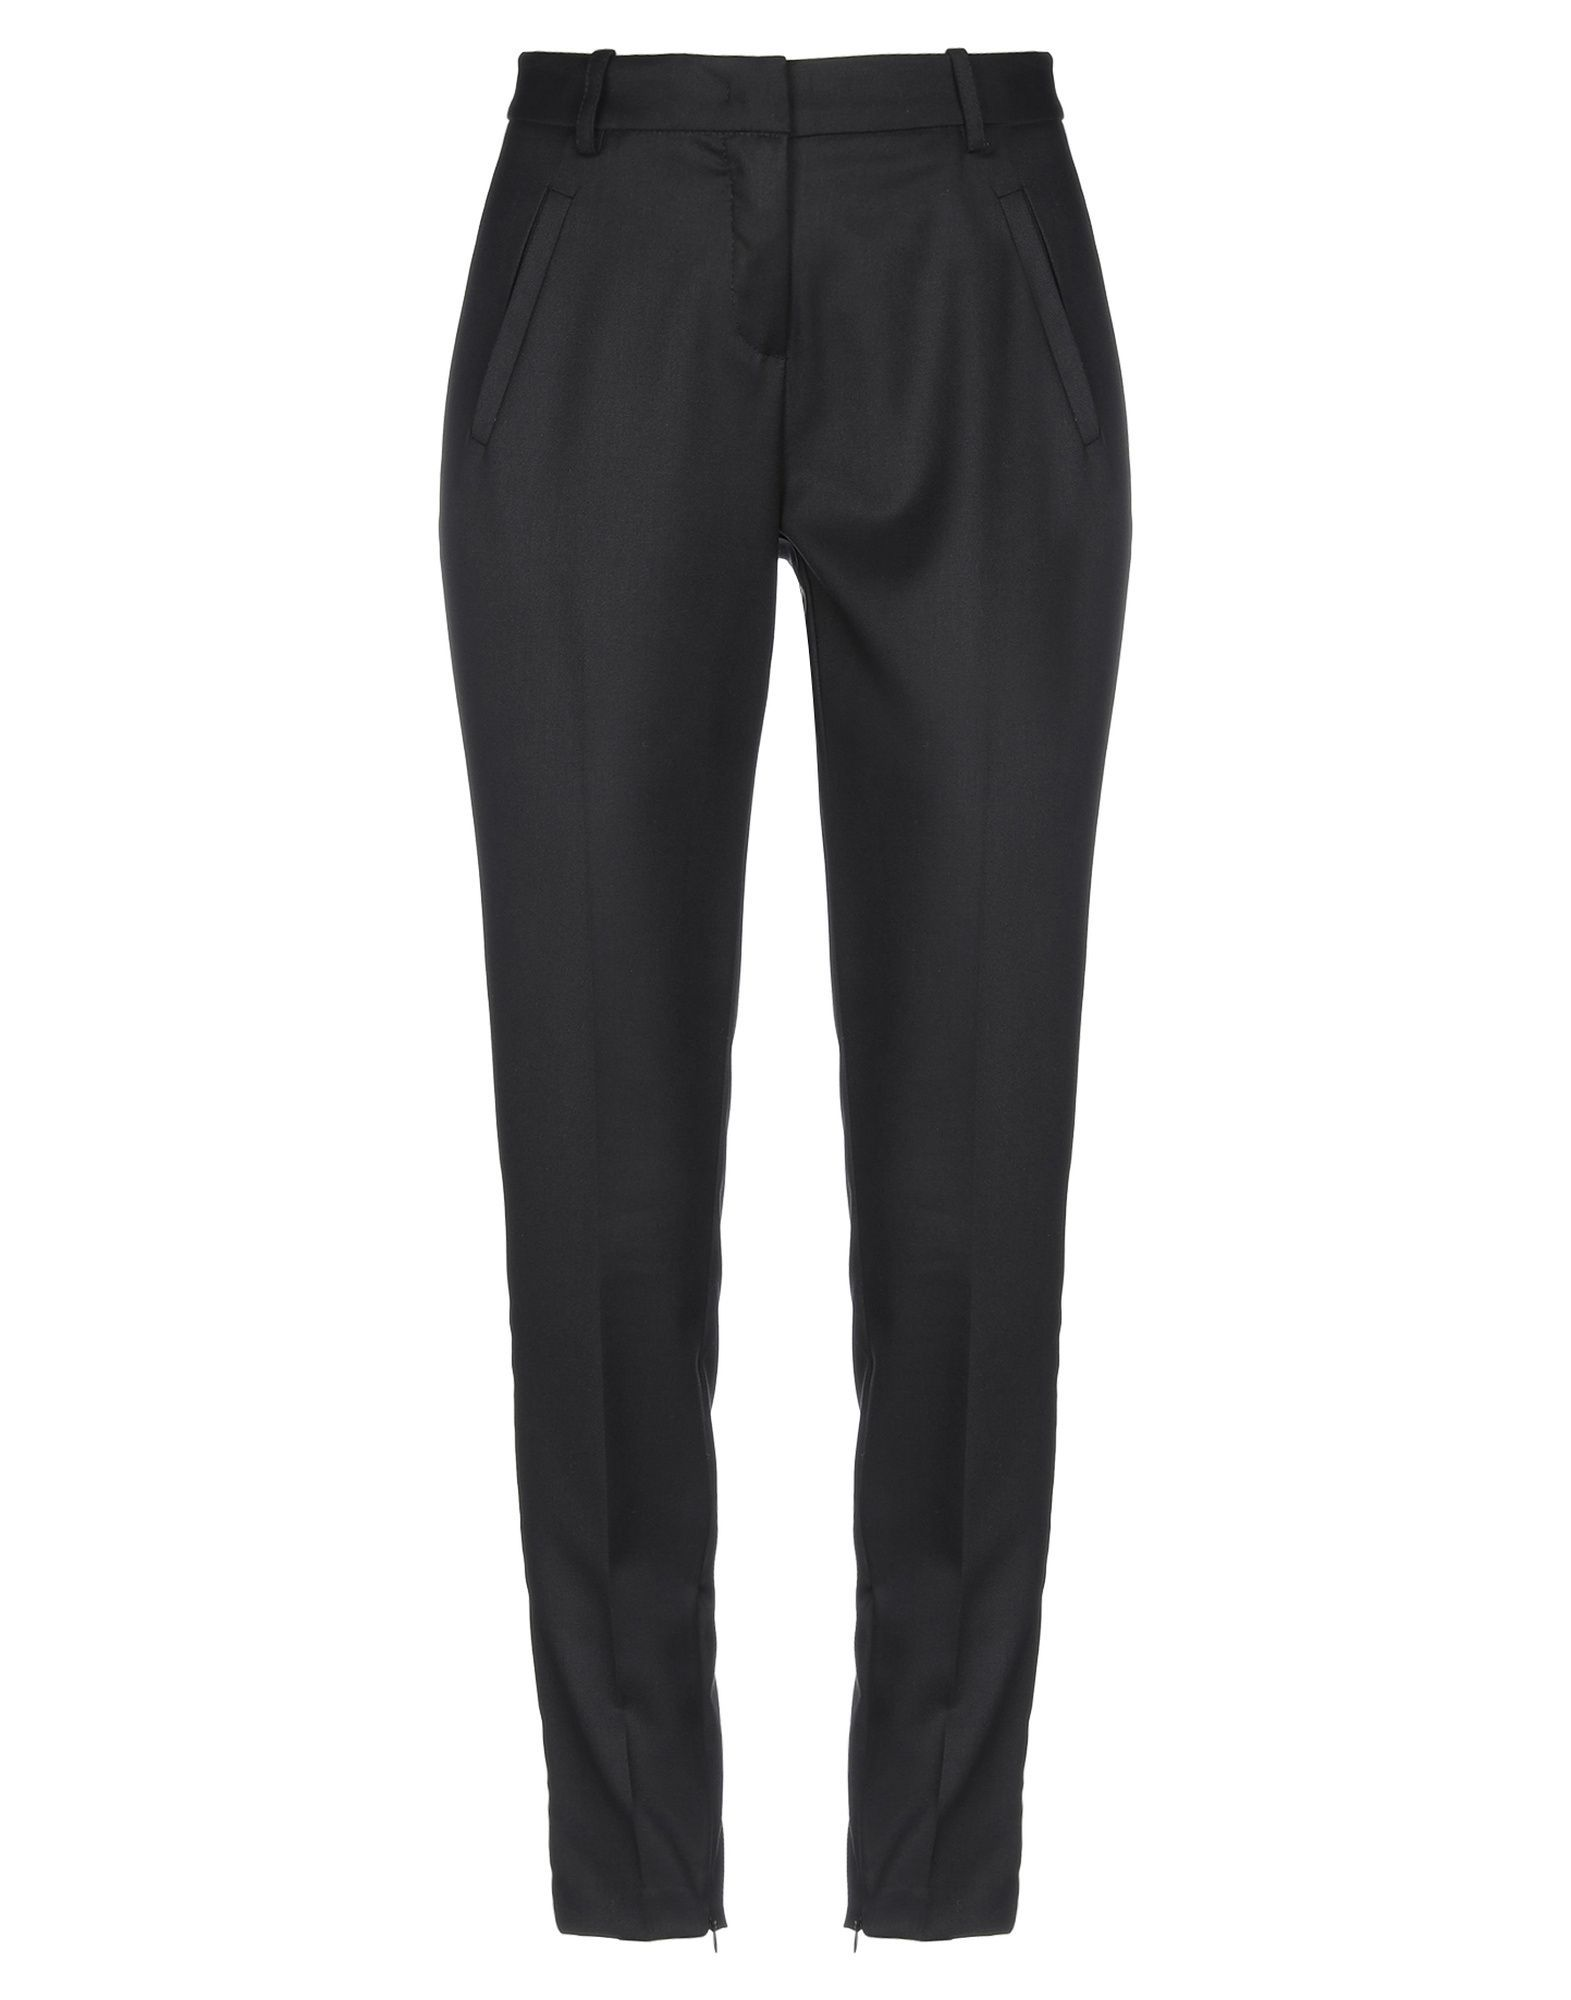 Kaos Black Tapered Trousers